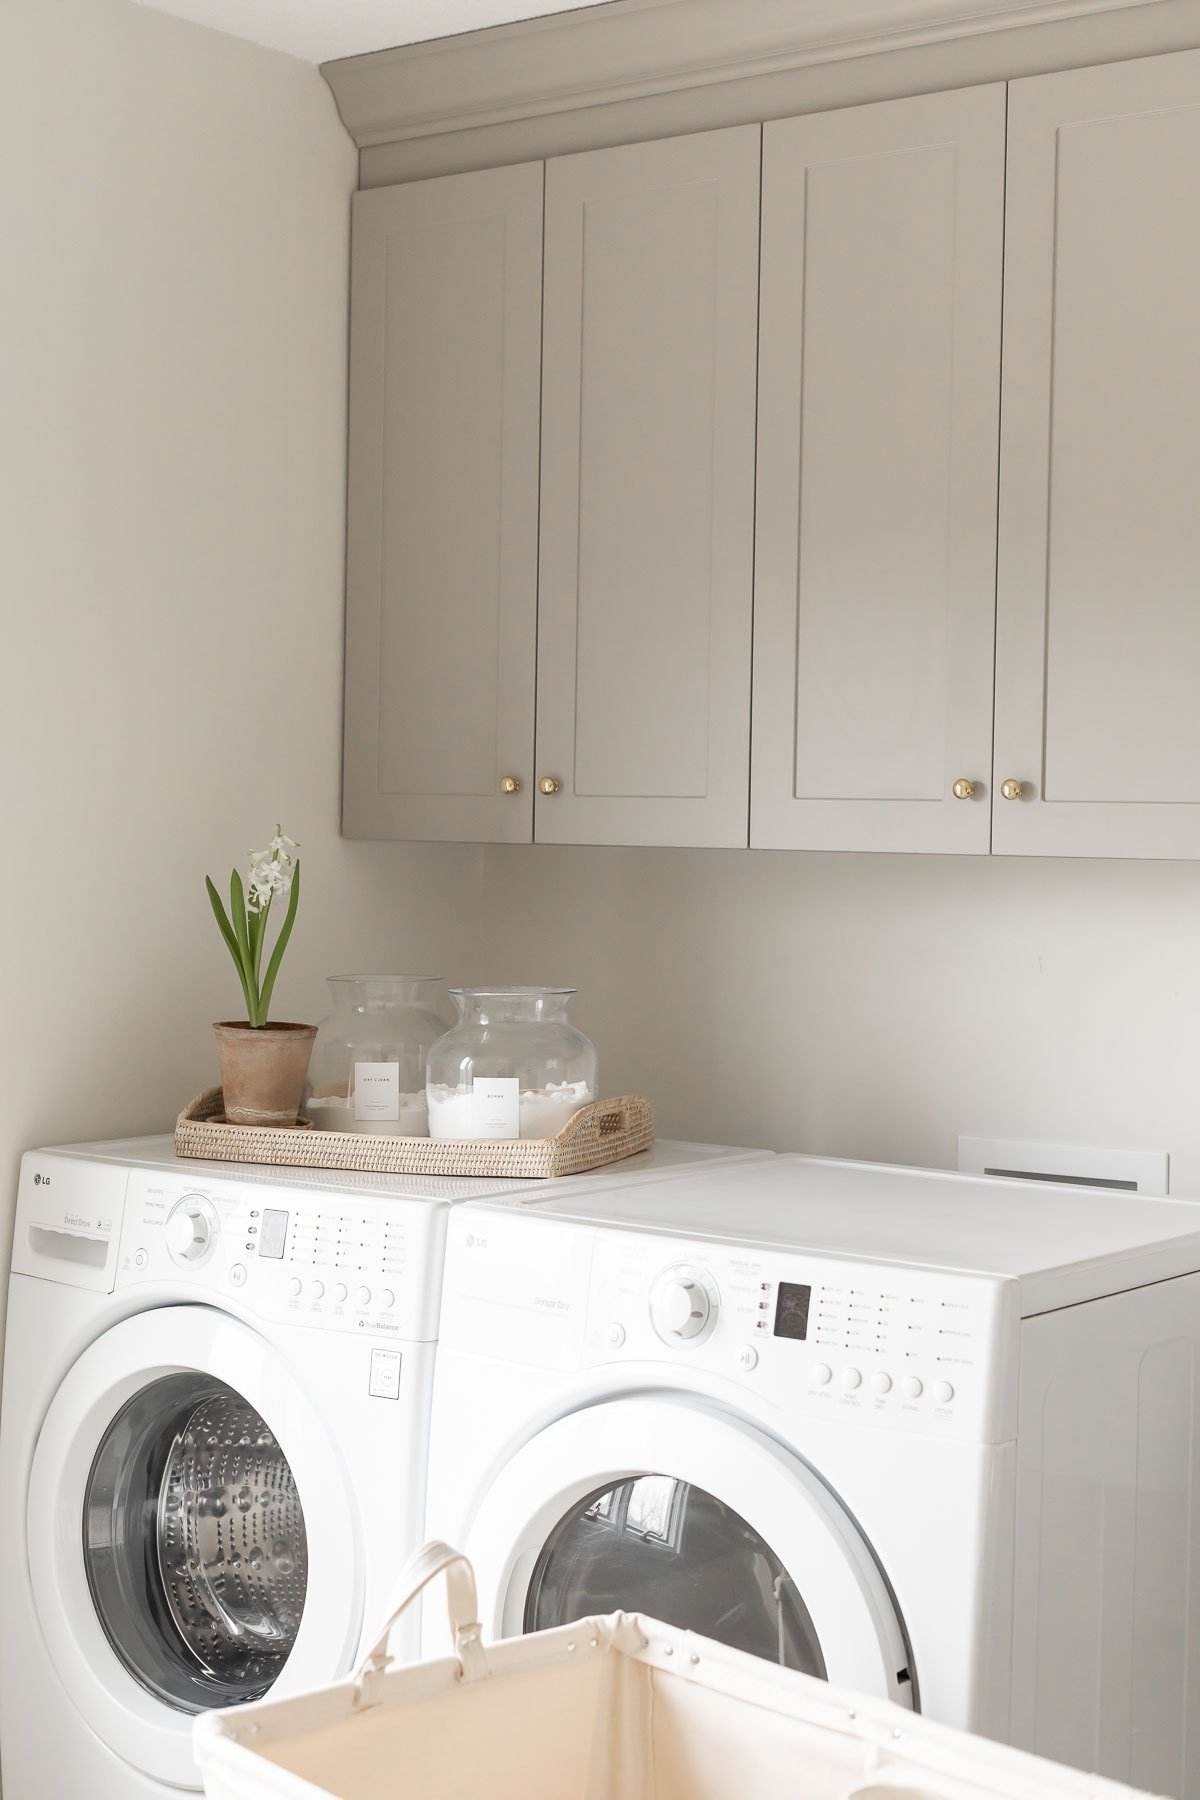 laundry rom cabinets above washer and drywer